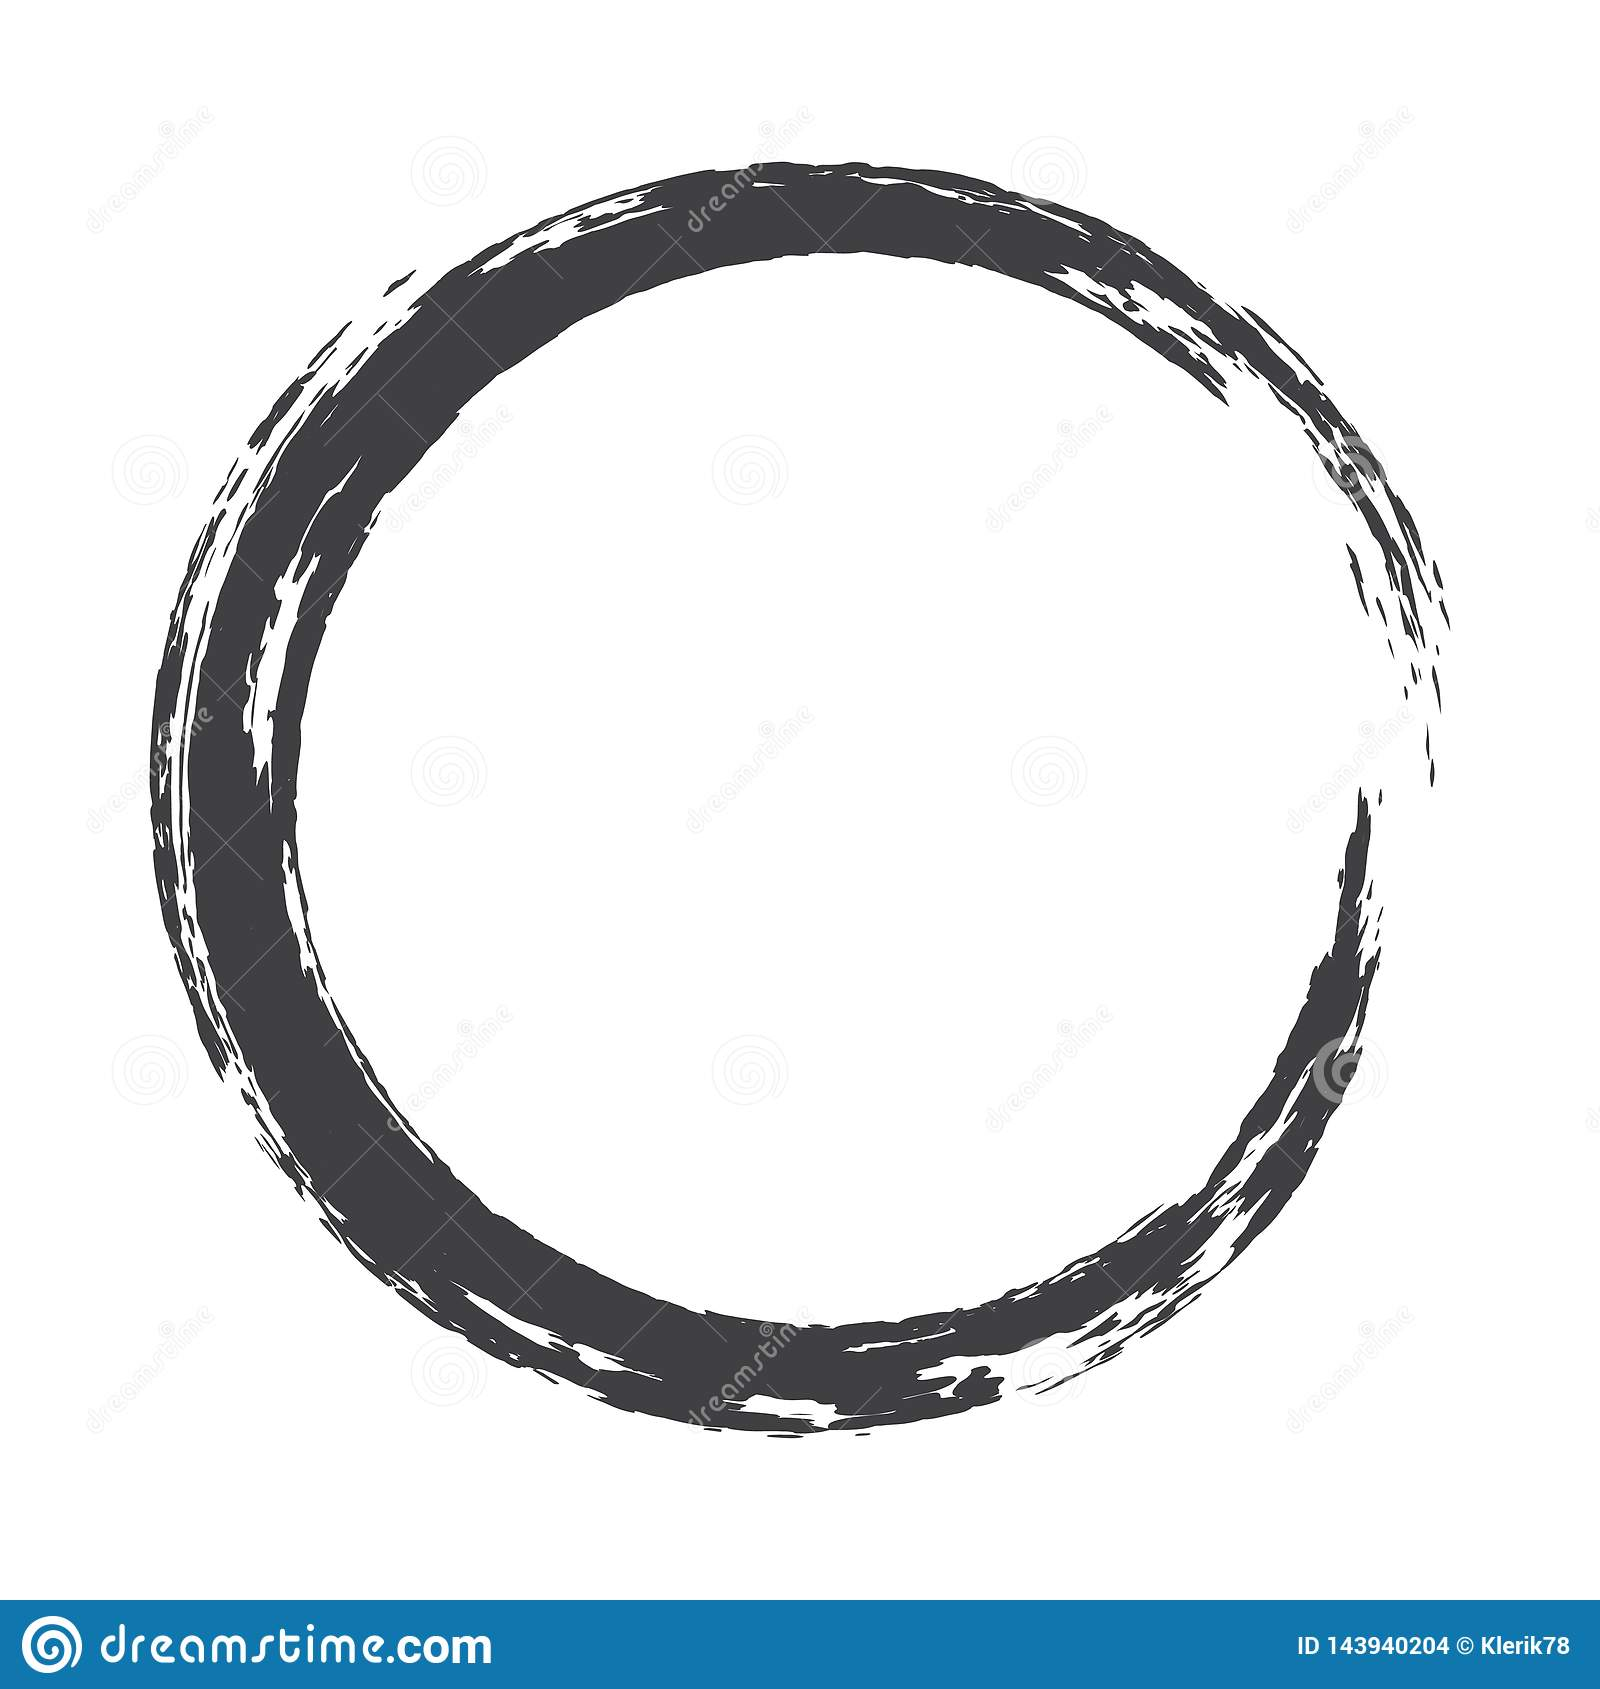 Vector paint brush circle stroke. Abstract Japanese style hand drawn ink round